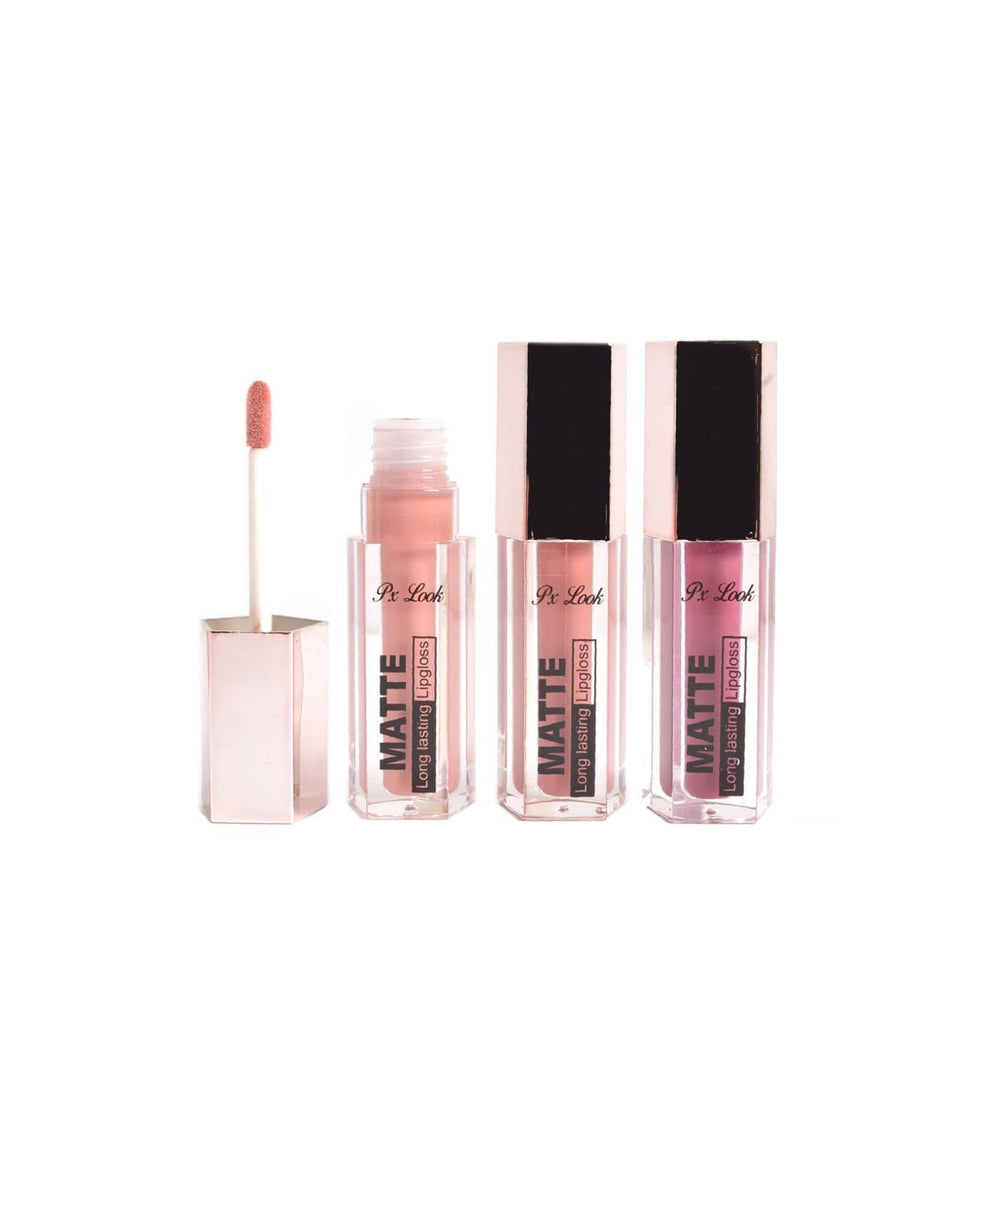 Px Look Matte Long Lasting Lipgloss